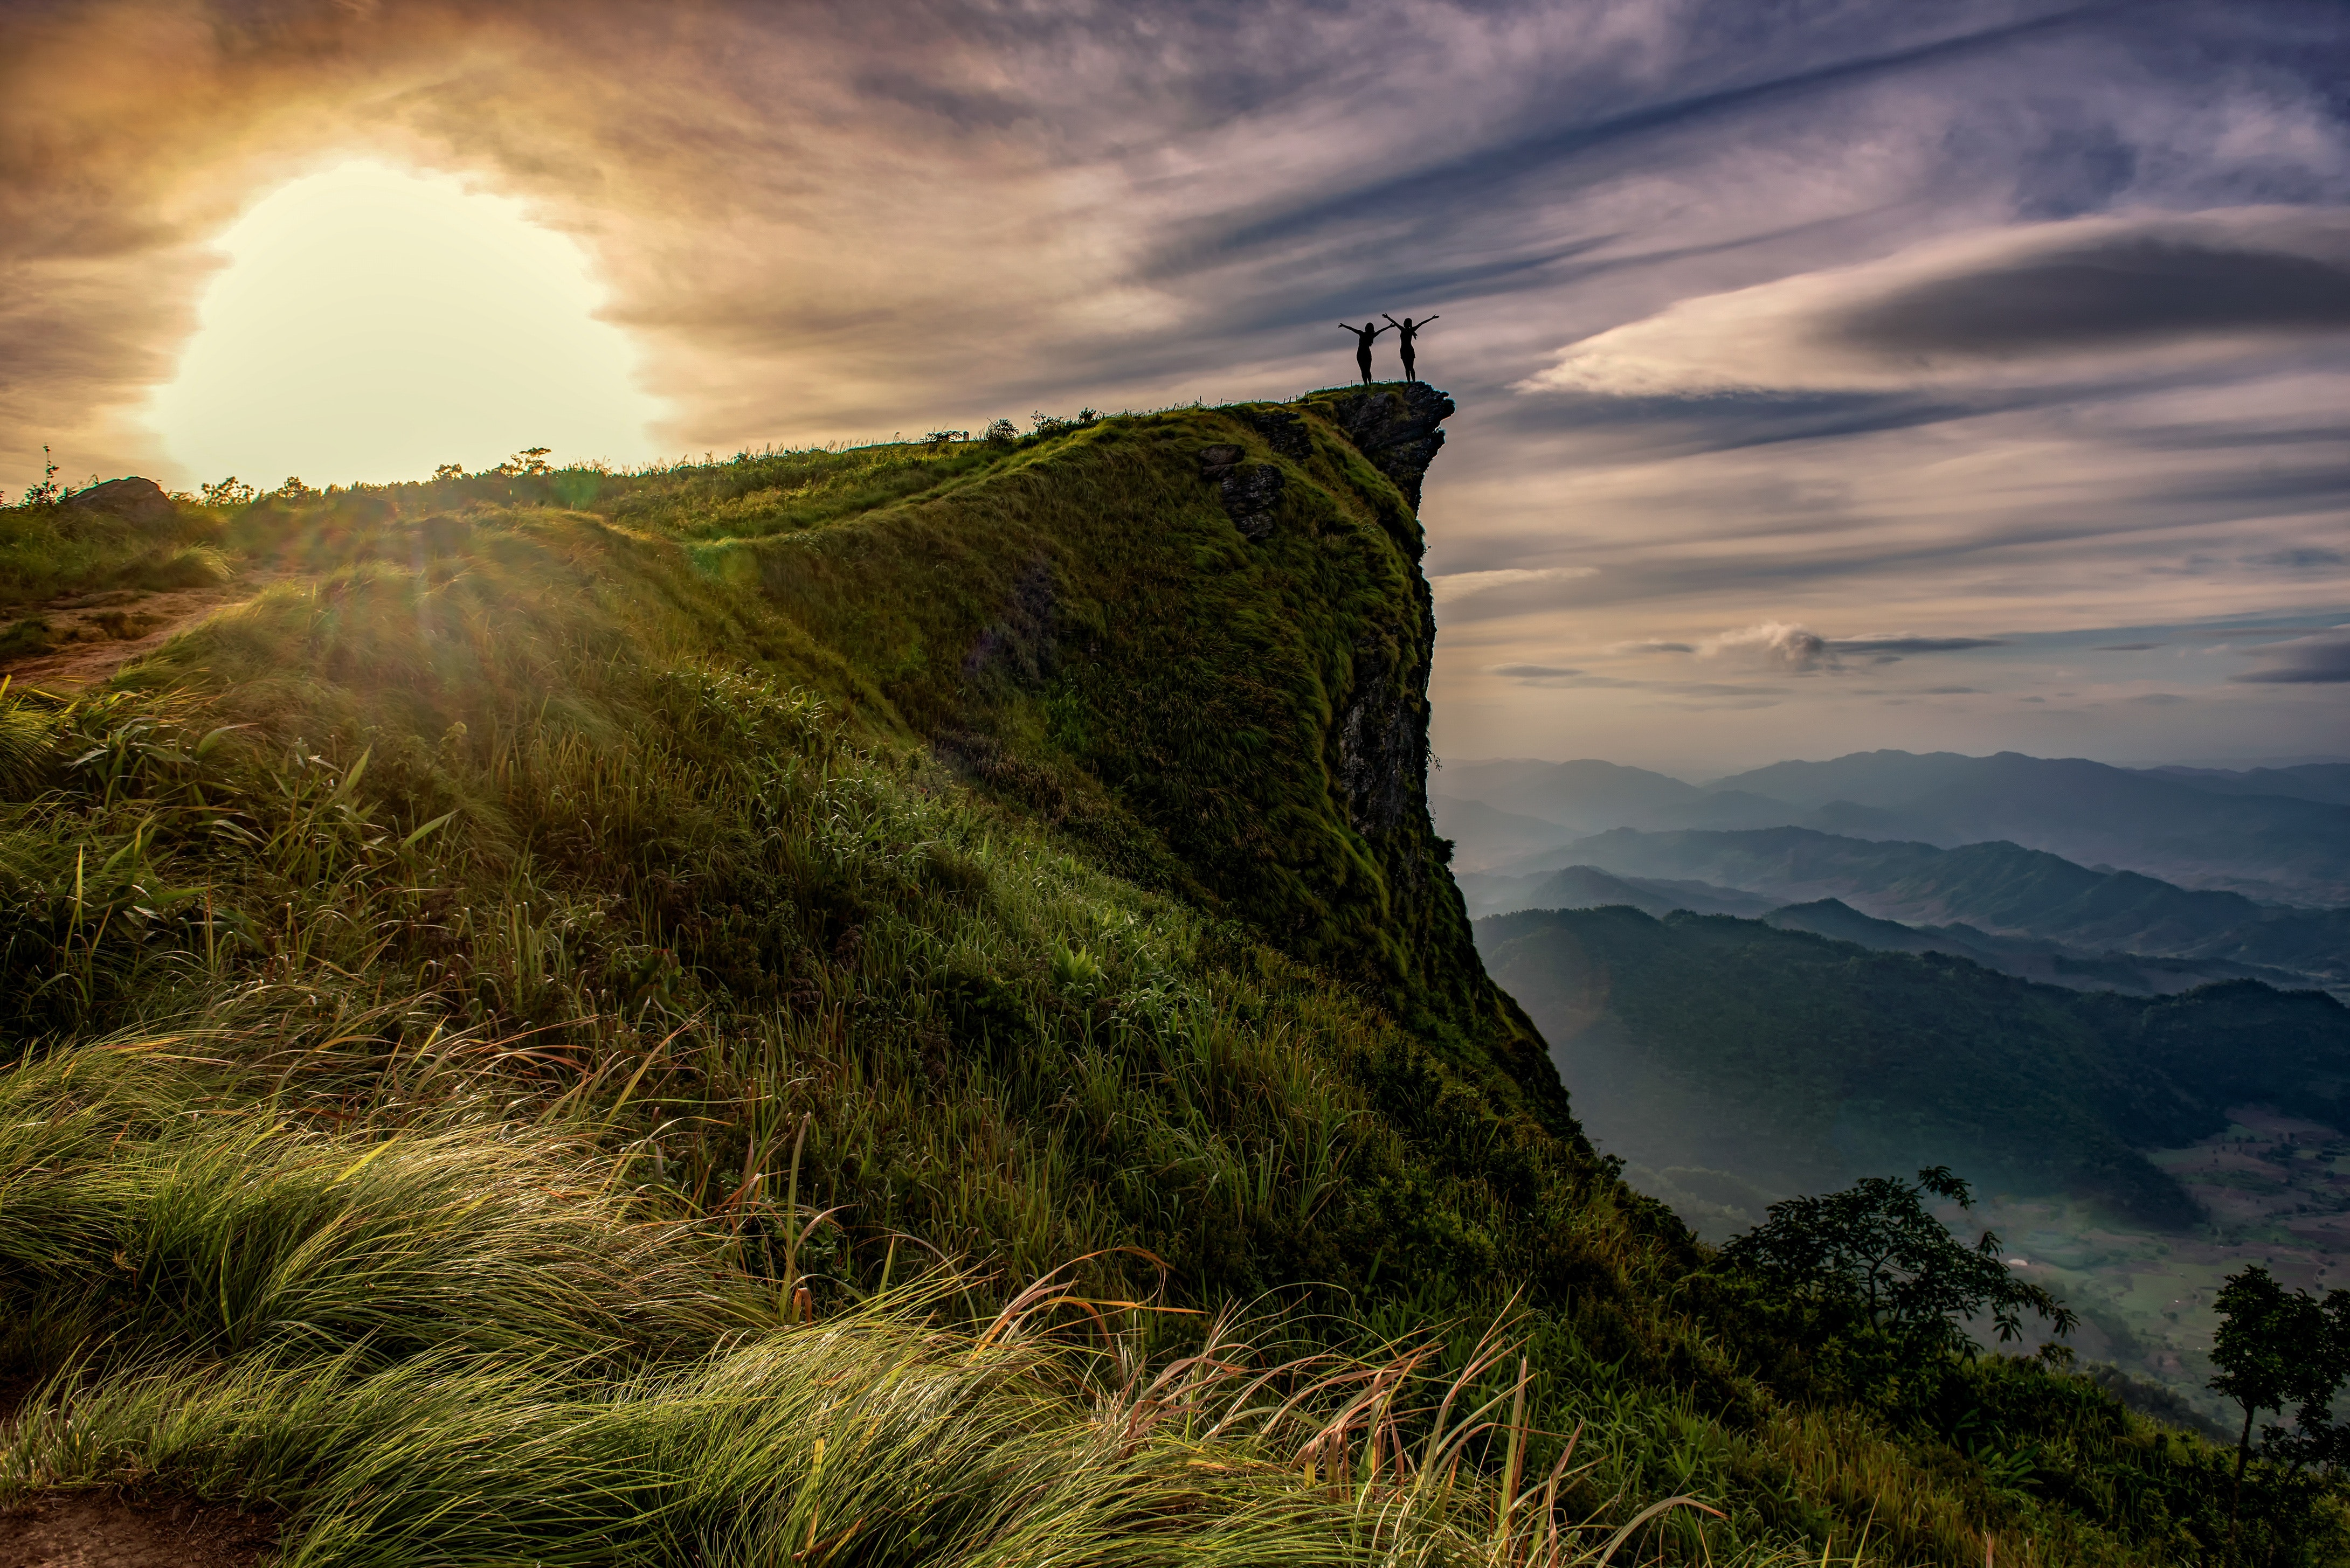 Scenic View of Landscape Against Sky during Sunset, Above, Hiking, Sunrise, Sunlight, HQ Photo